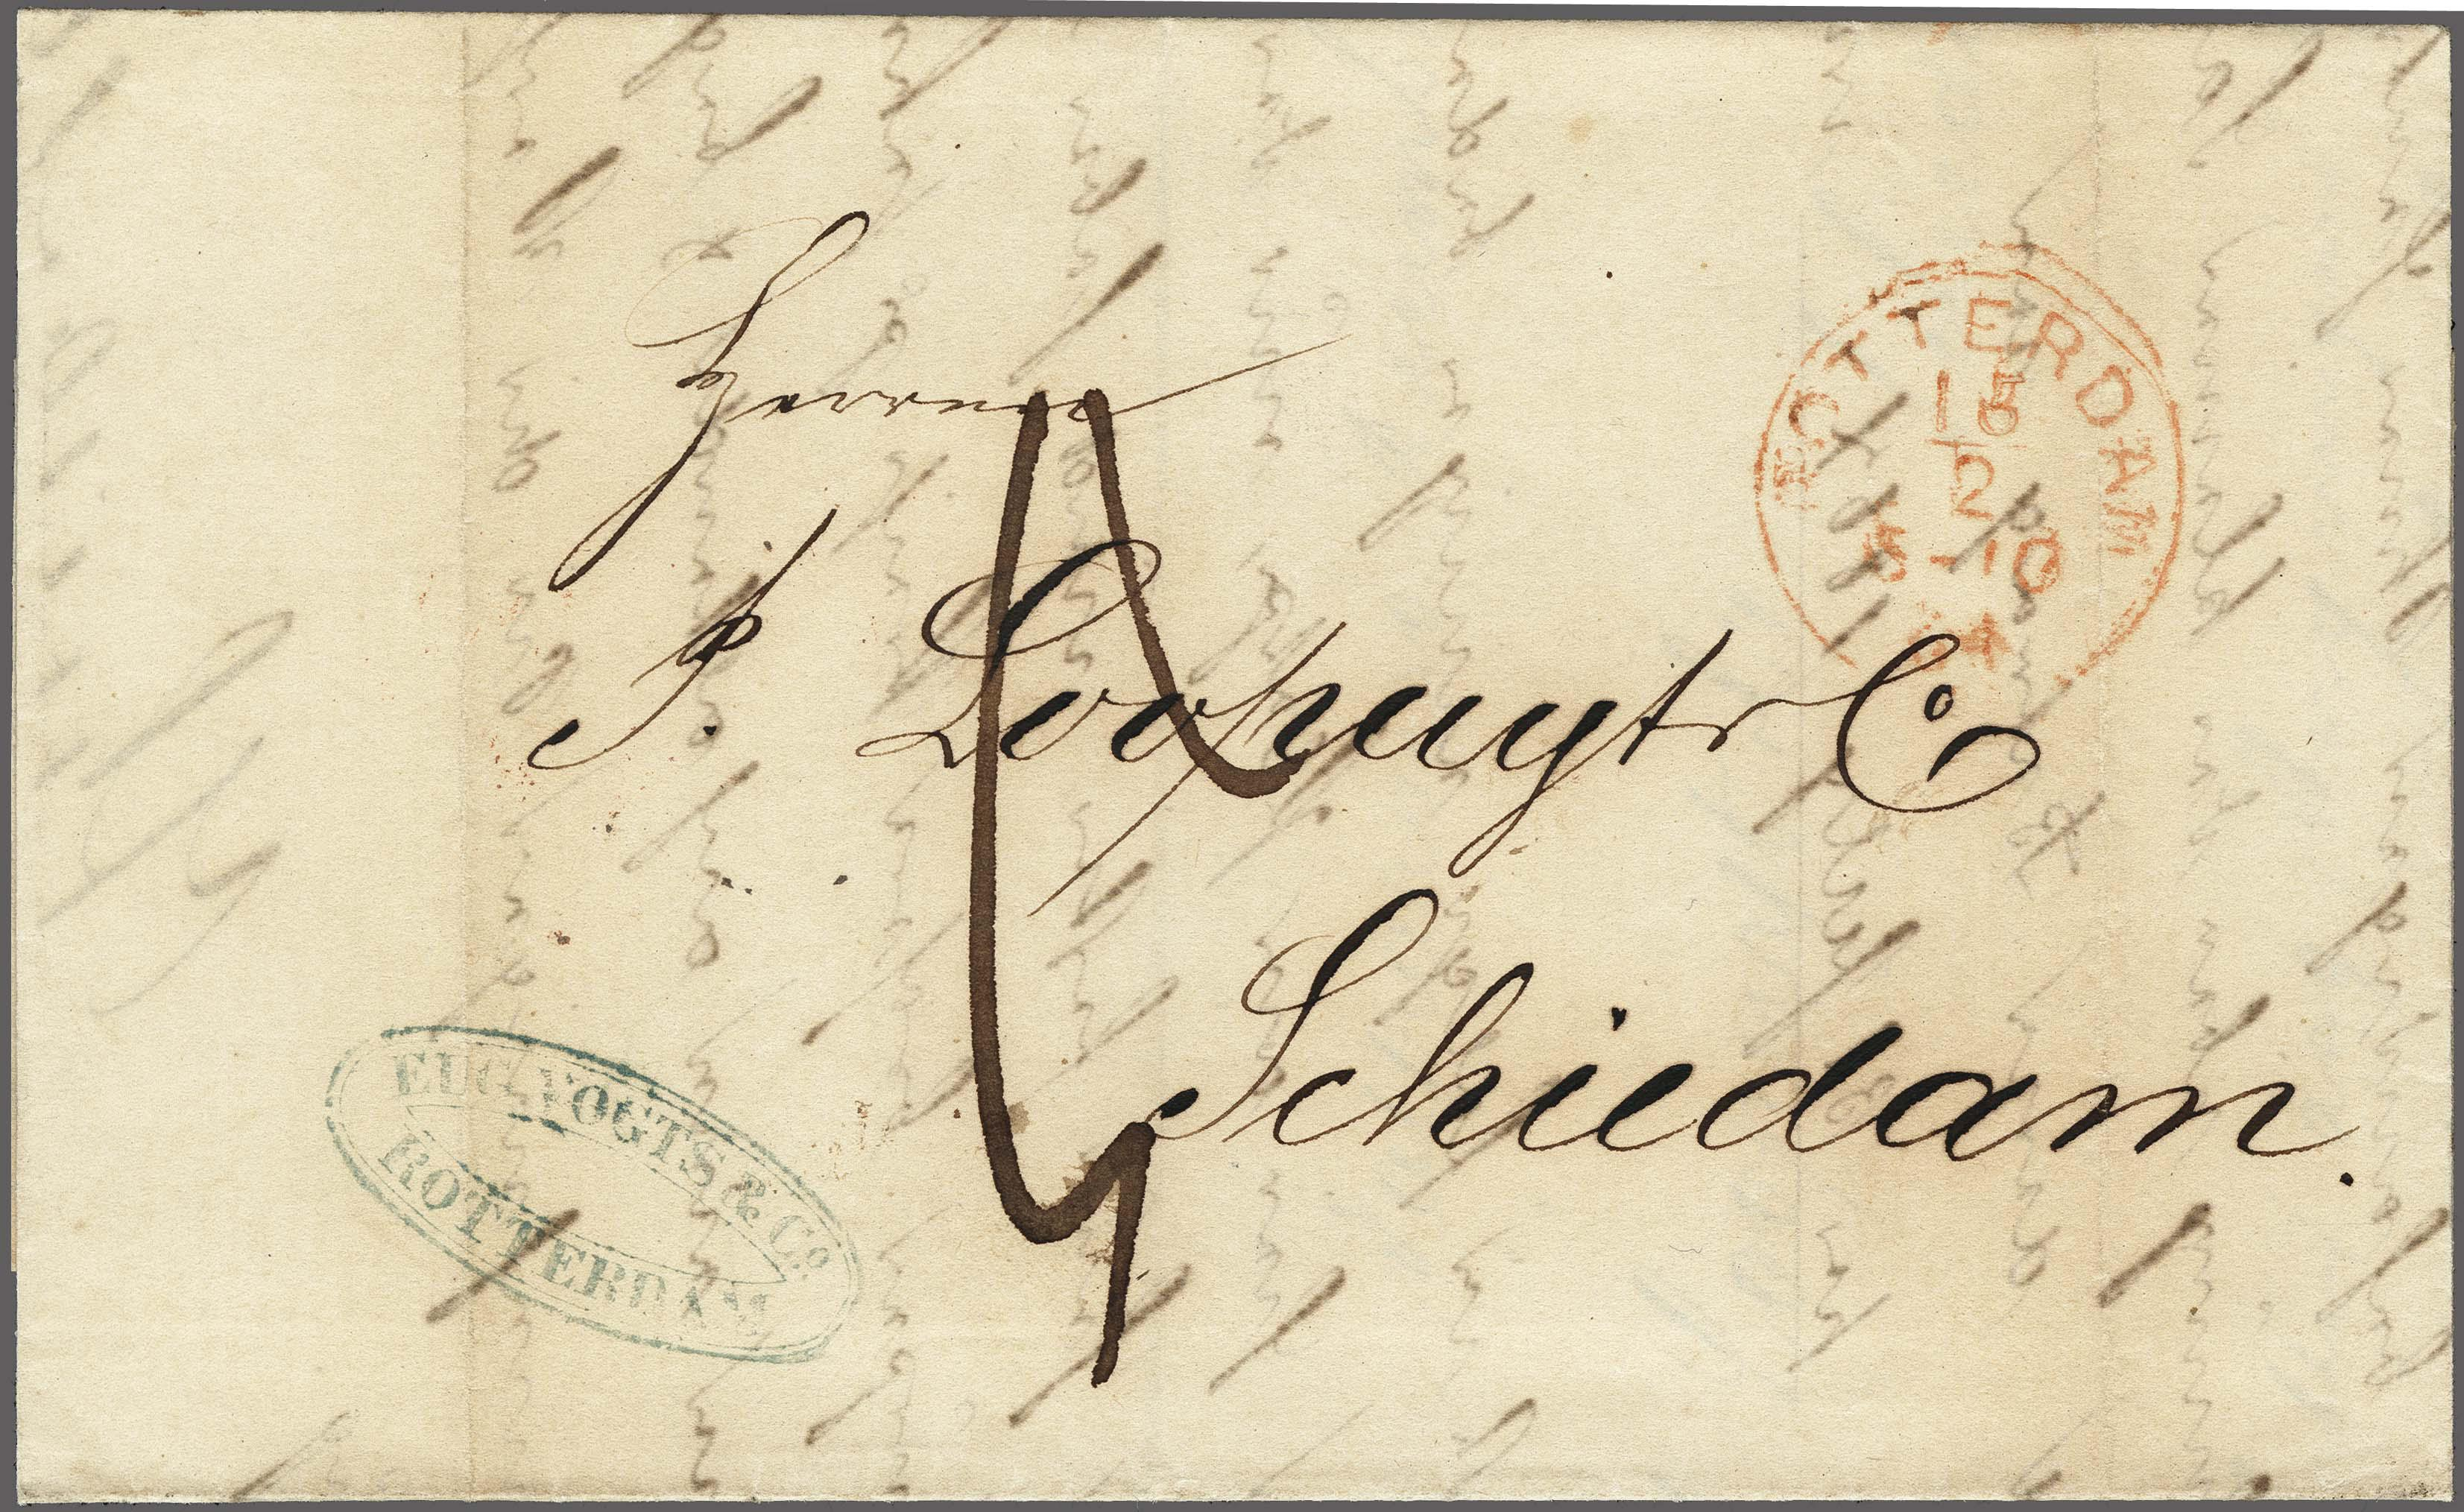 Lot 2455 - Netherlands and former colonies Netherlands -  Corinphila Veilingen Auction 250-253 - Day 3 - Netherlands and former colonies - Single lots & Picture postcards